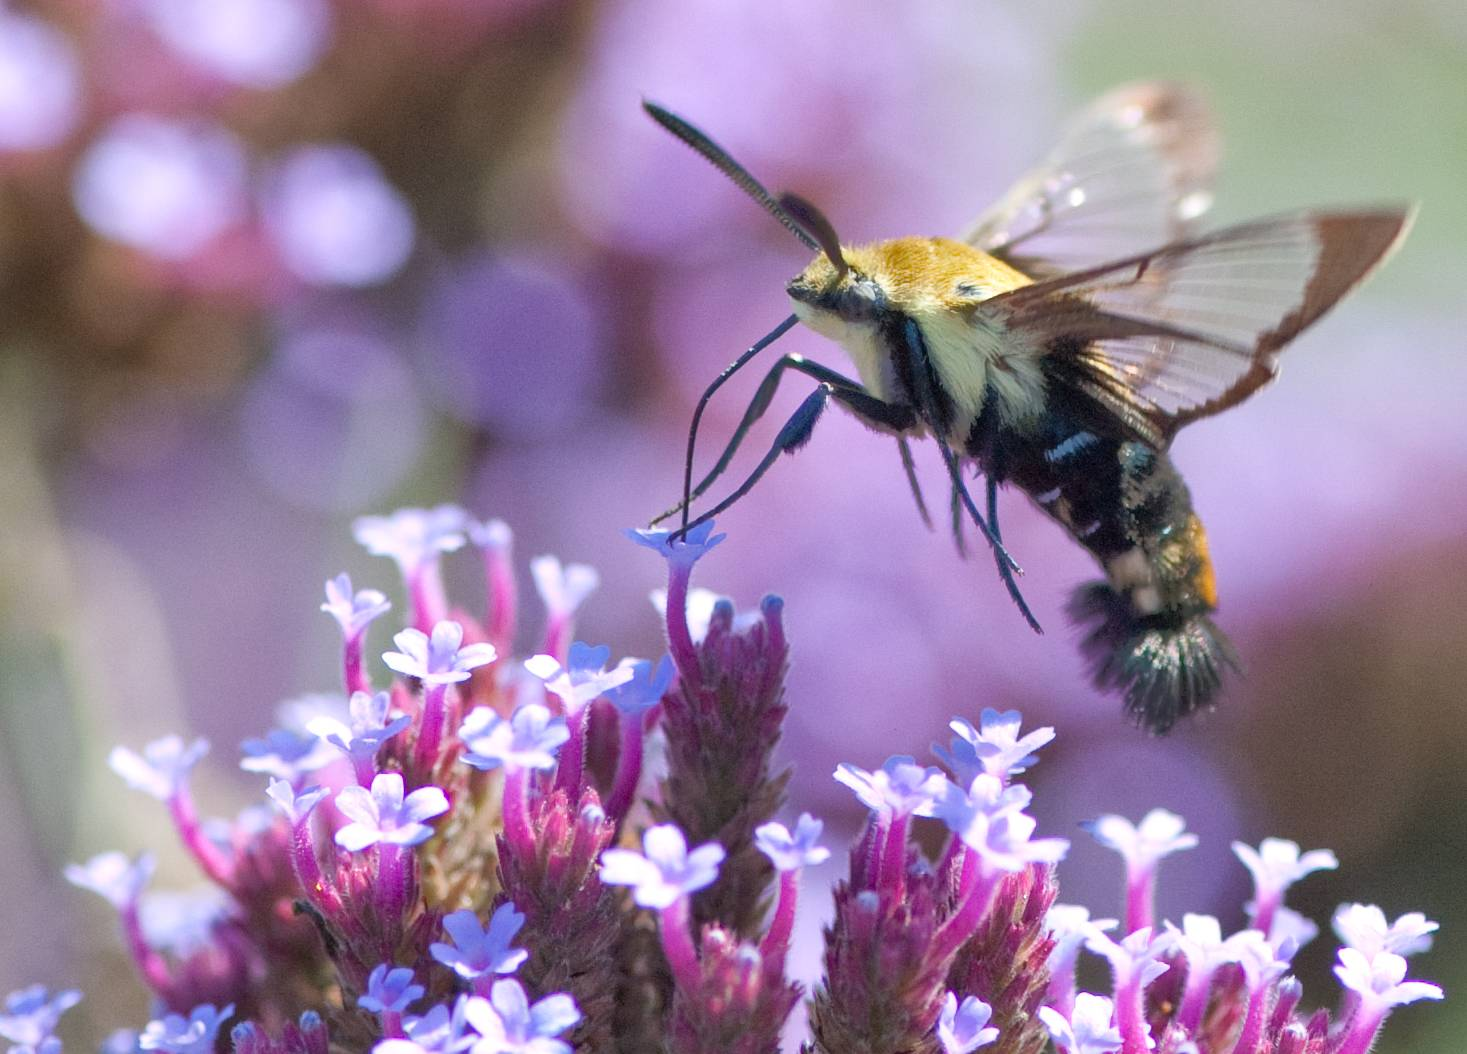 Organic farms are better for better species diversity including bees and other insects, Oxford University study says.